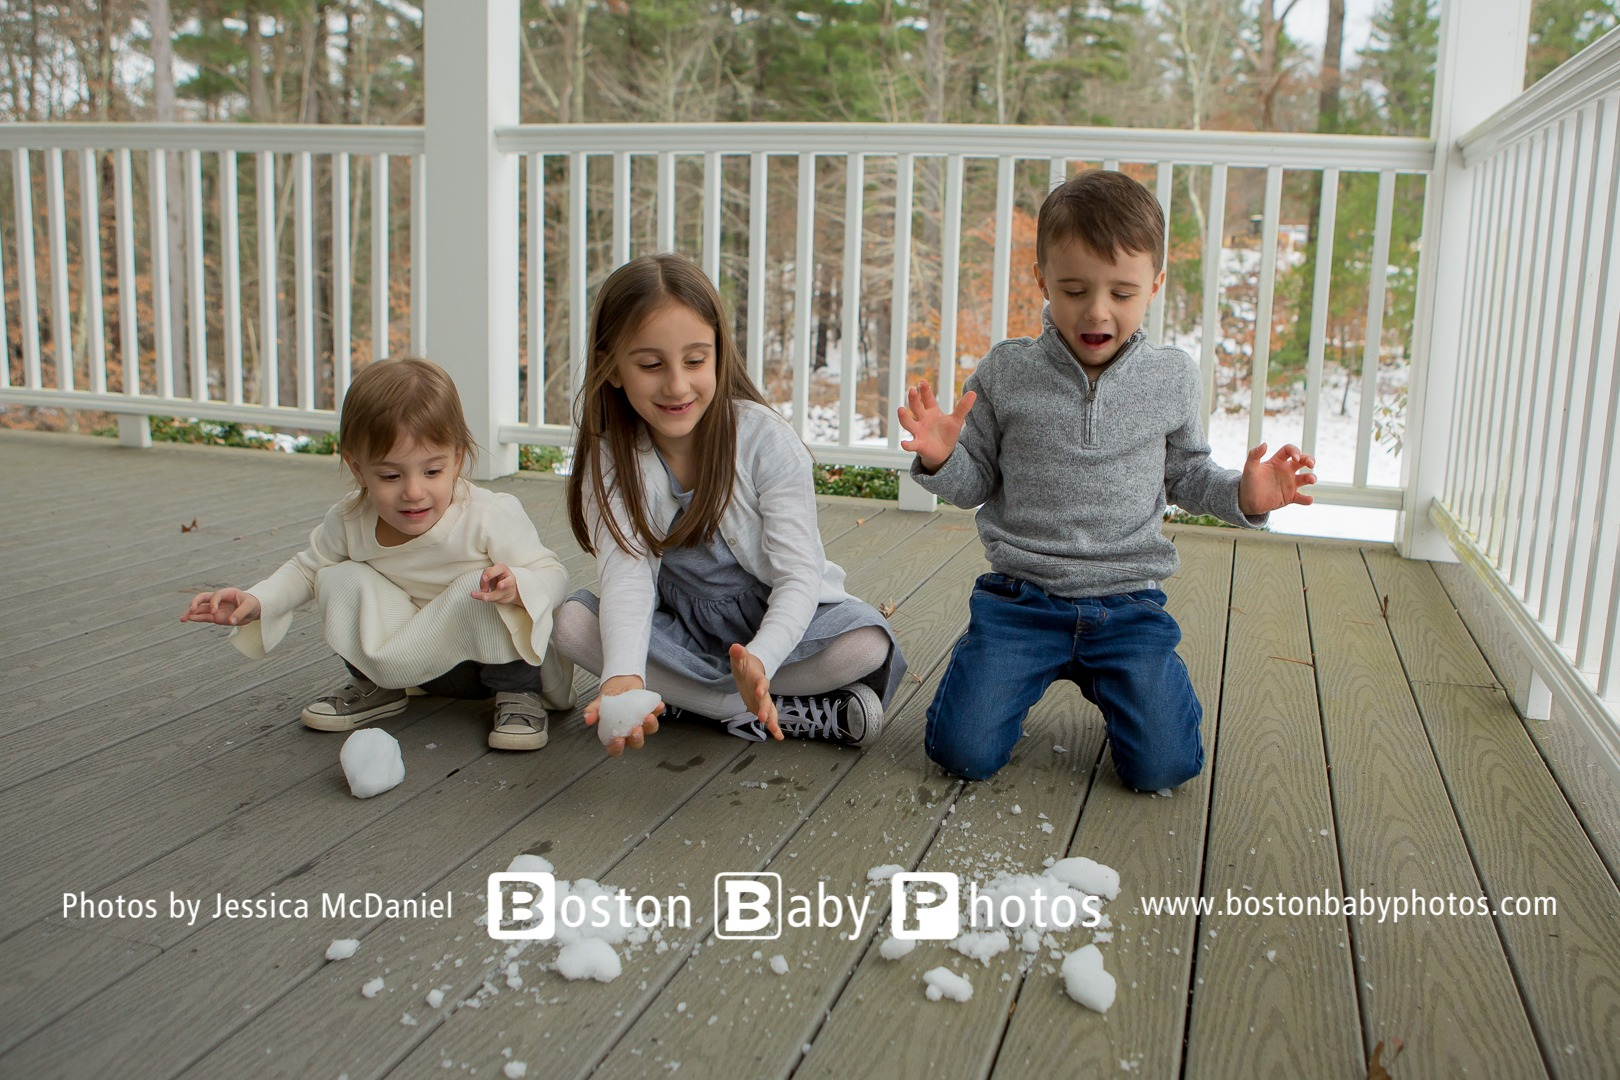 Boxford, MA: Three kiddos get cozy and a bit of snow